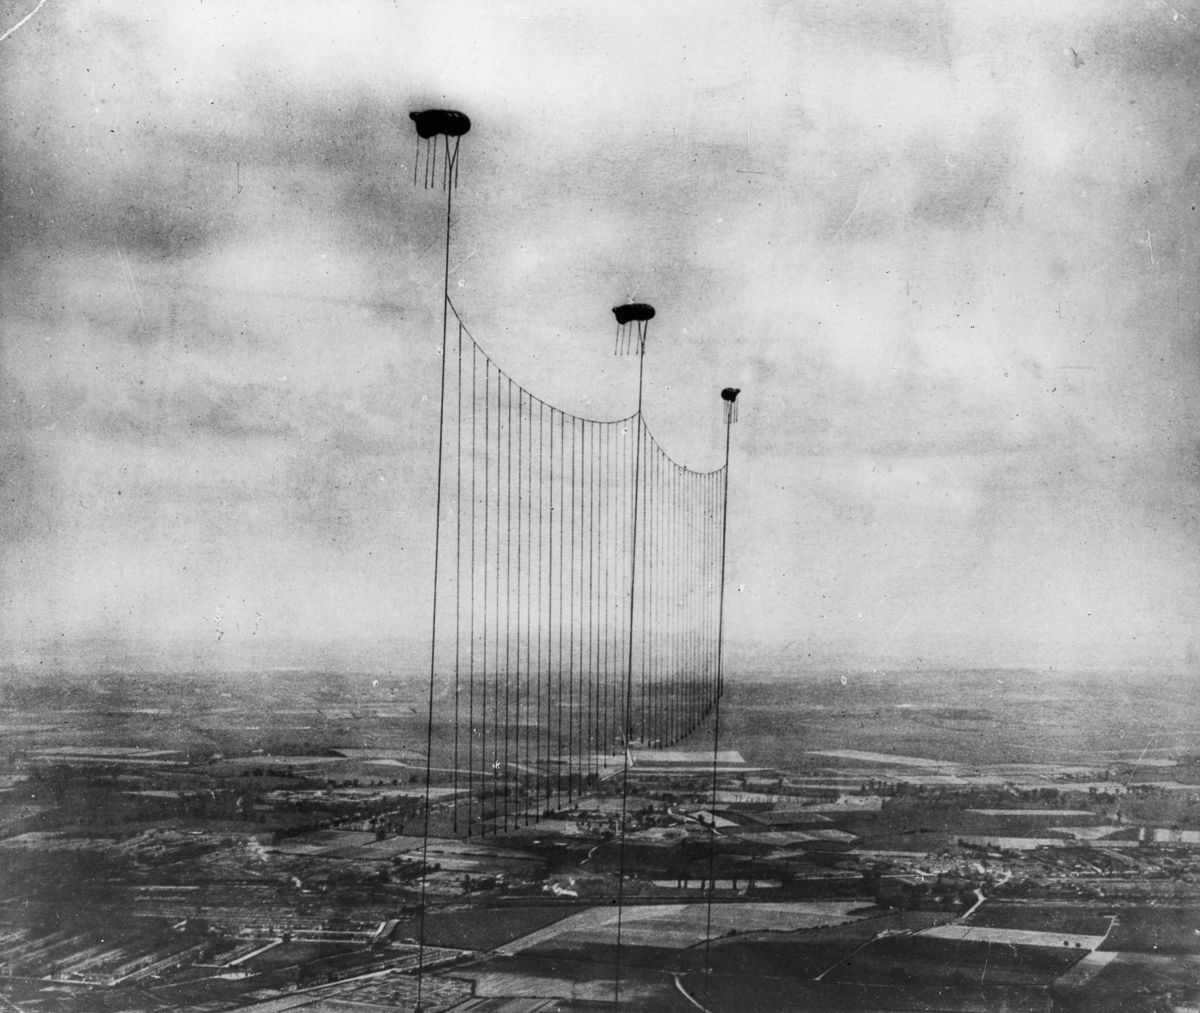 White apron london - 1915 A Balloon Apron Is Suspended To Defend London From Air Attacks